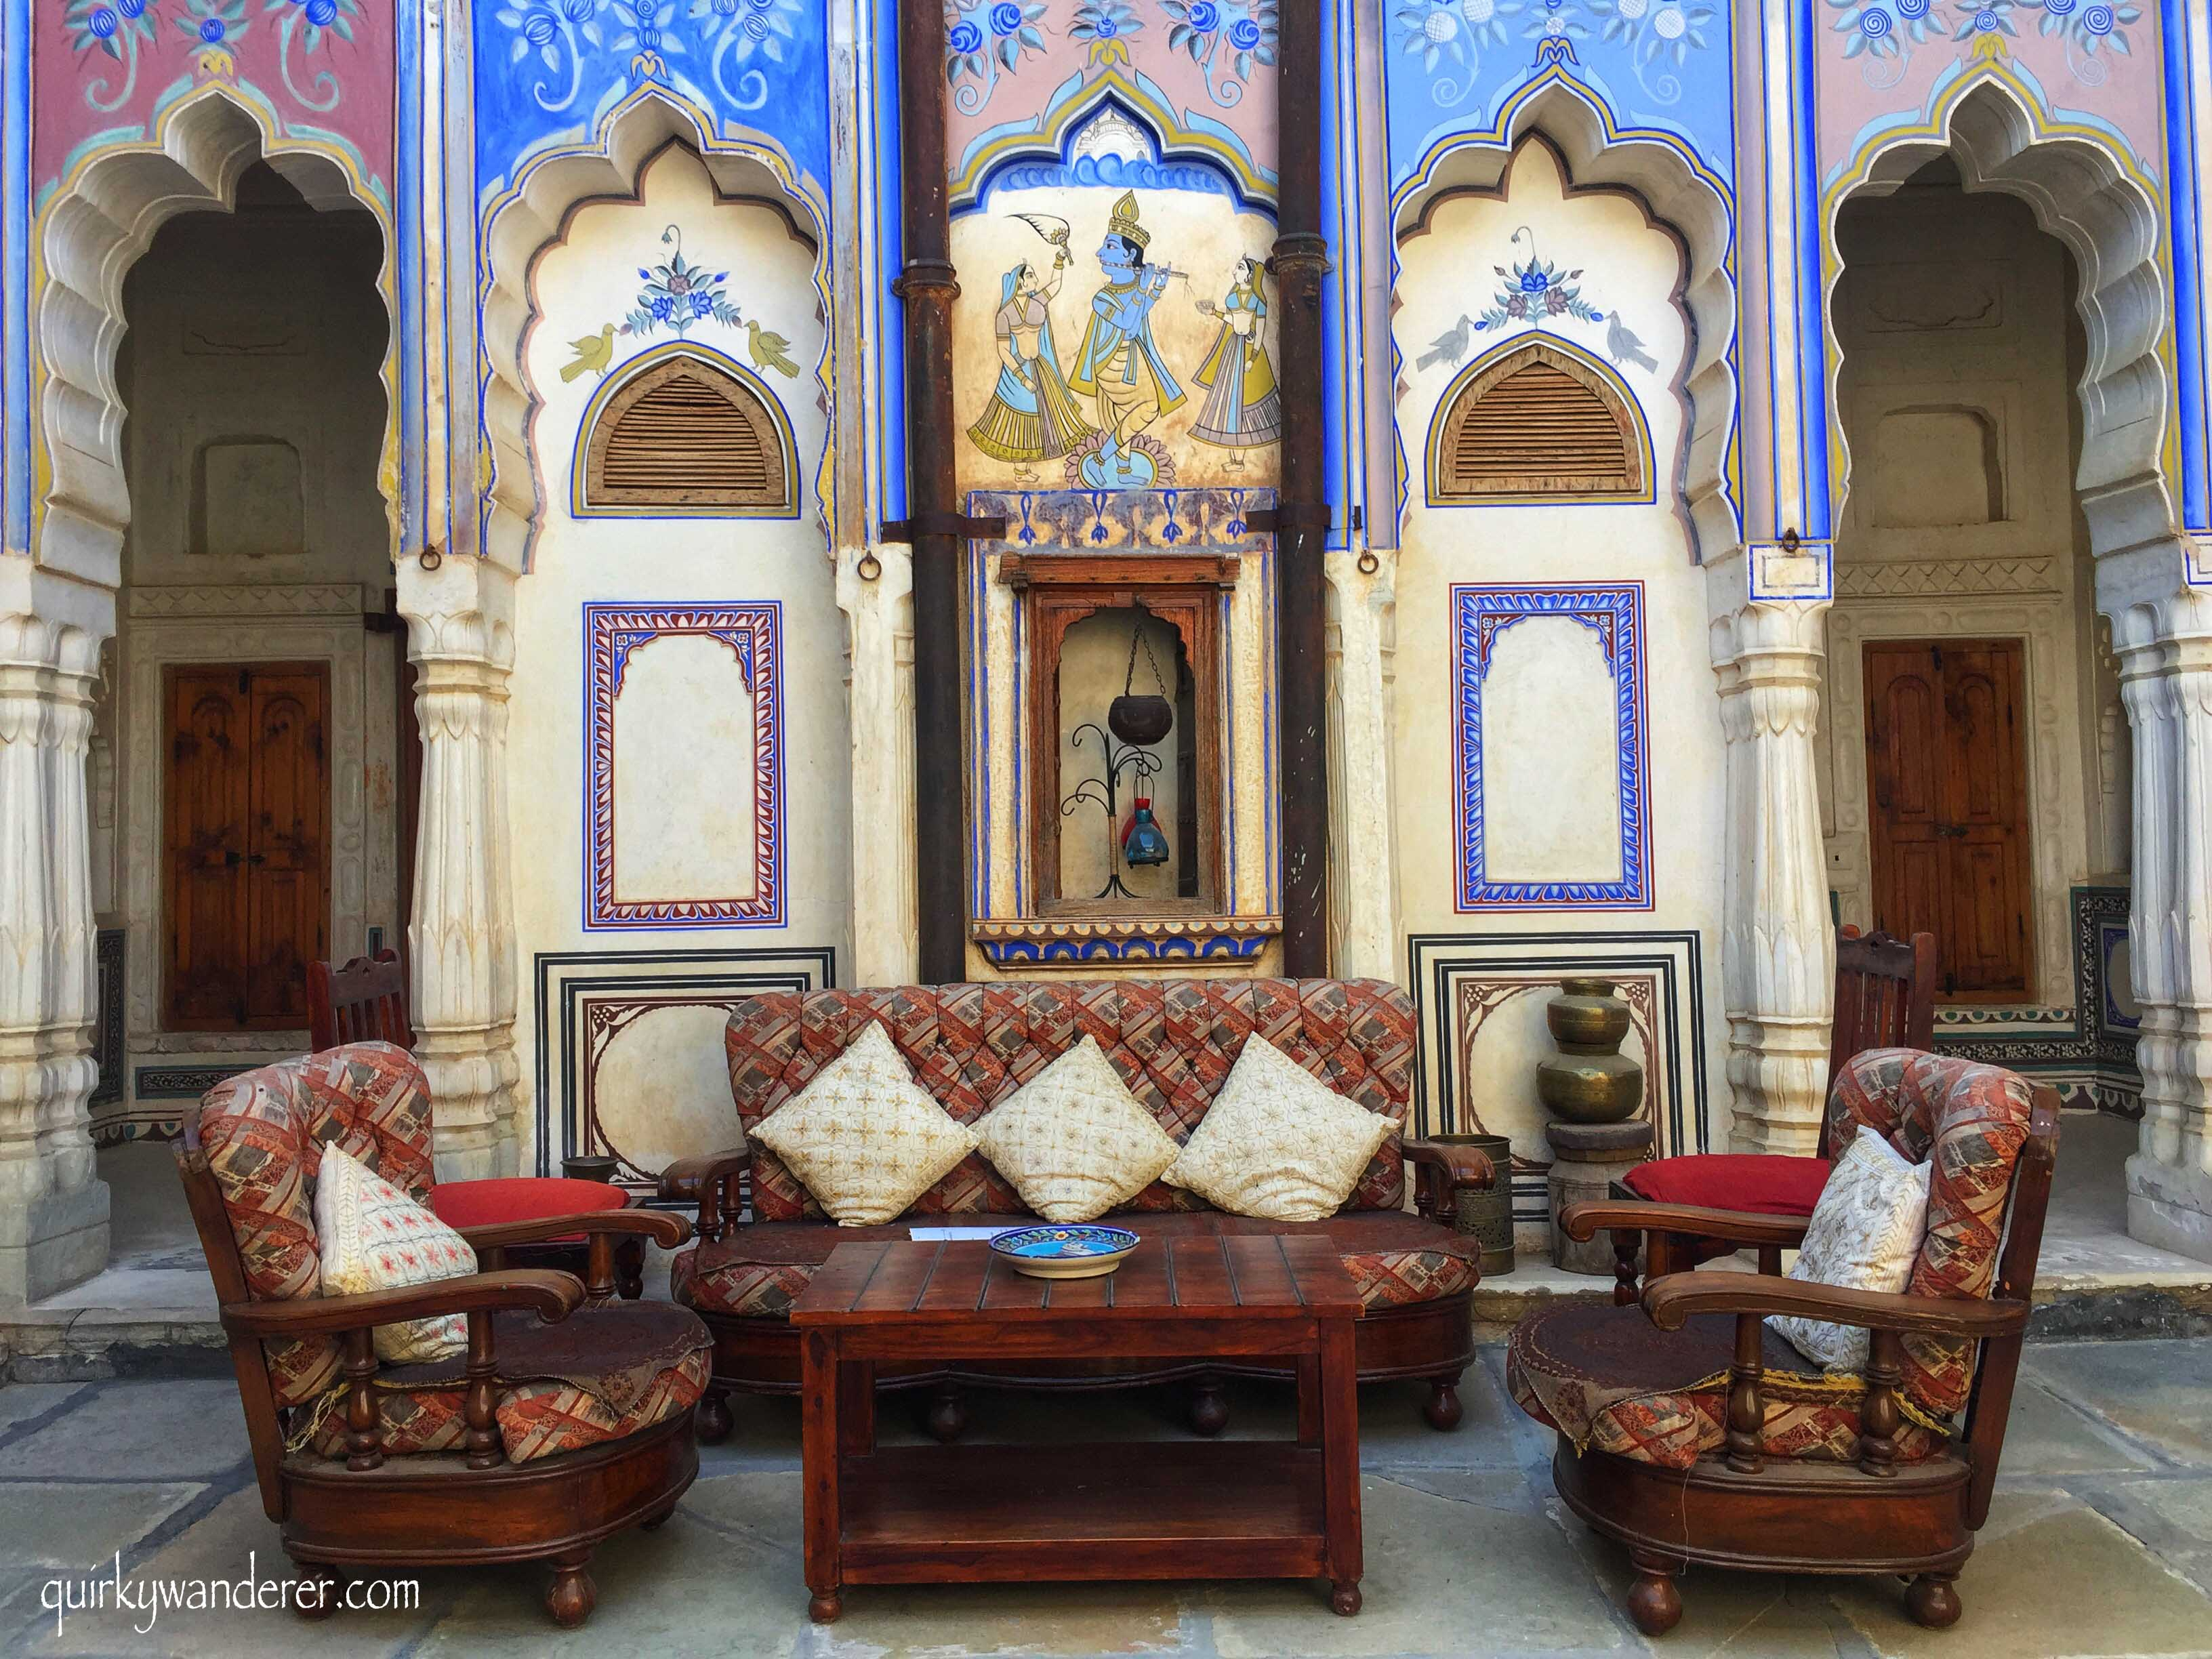 Where to stay in Shekhawati , Rajasthan